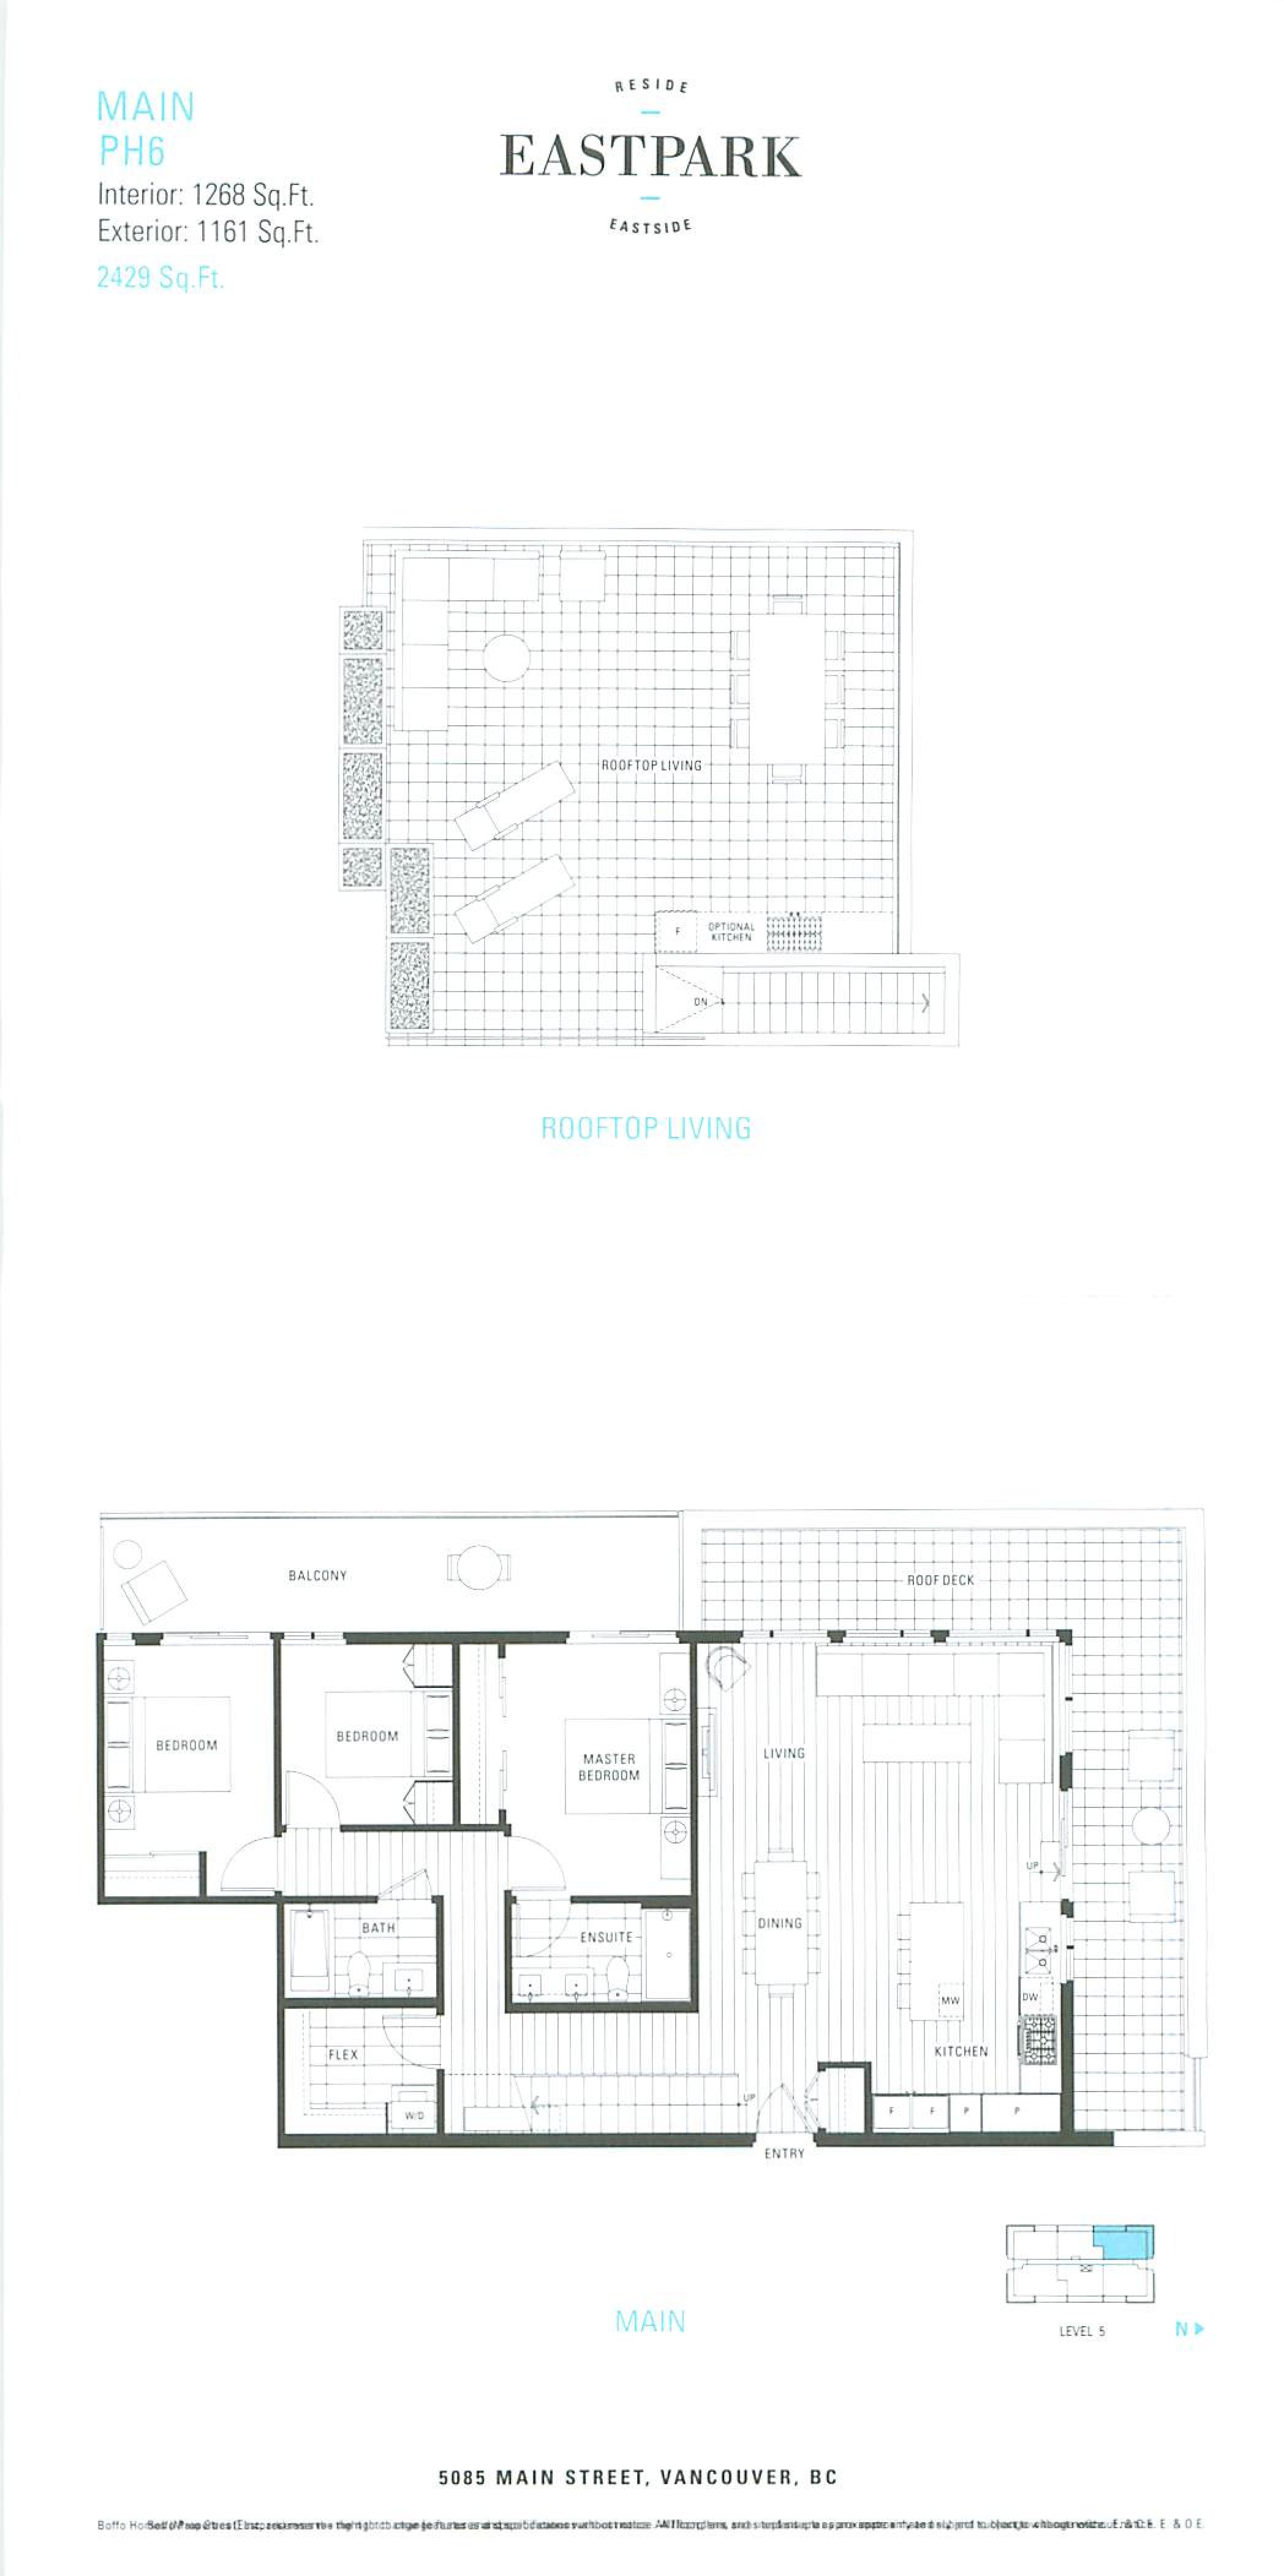 EastPark Main Larger Floor Plans Mike Stewart-page-004